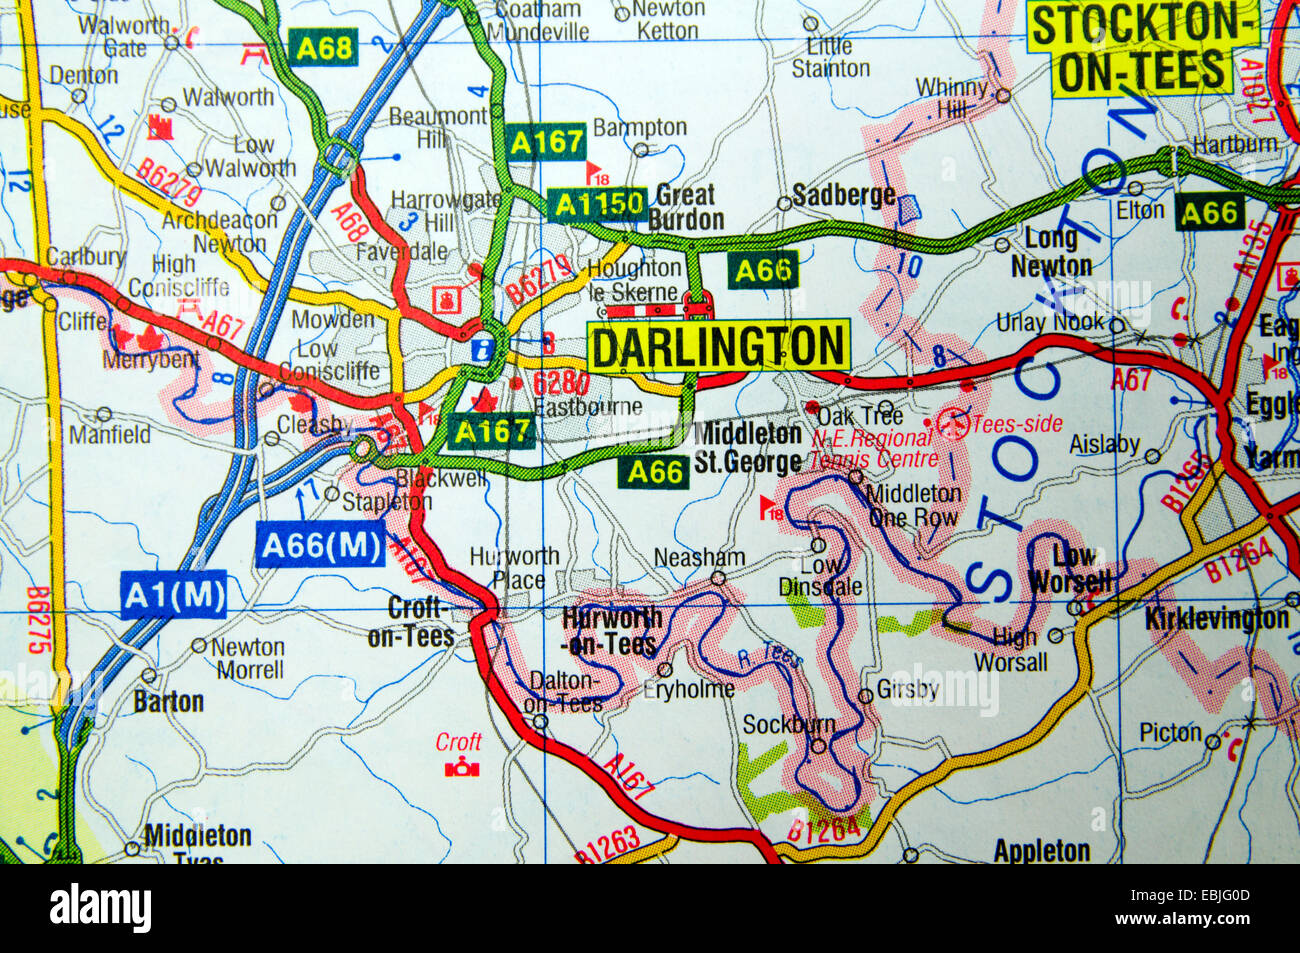 Road Map of Darlington Northern England Stock Photo: 76010381   Alamy